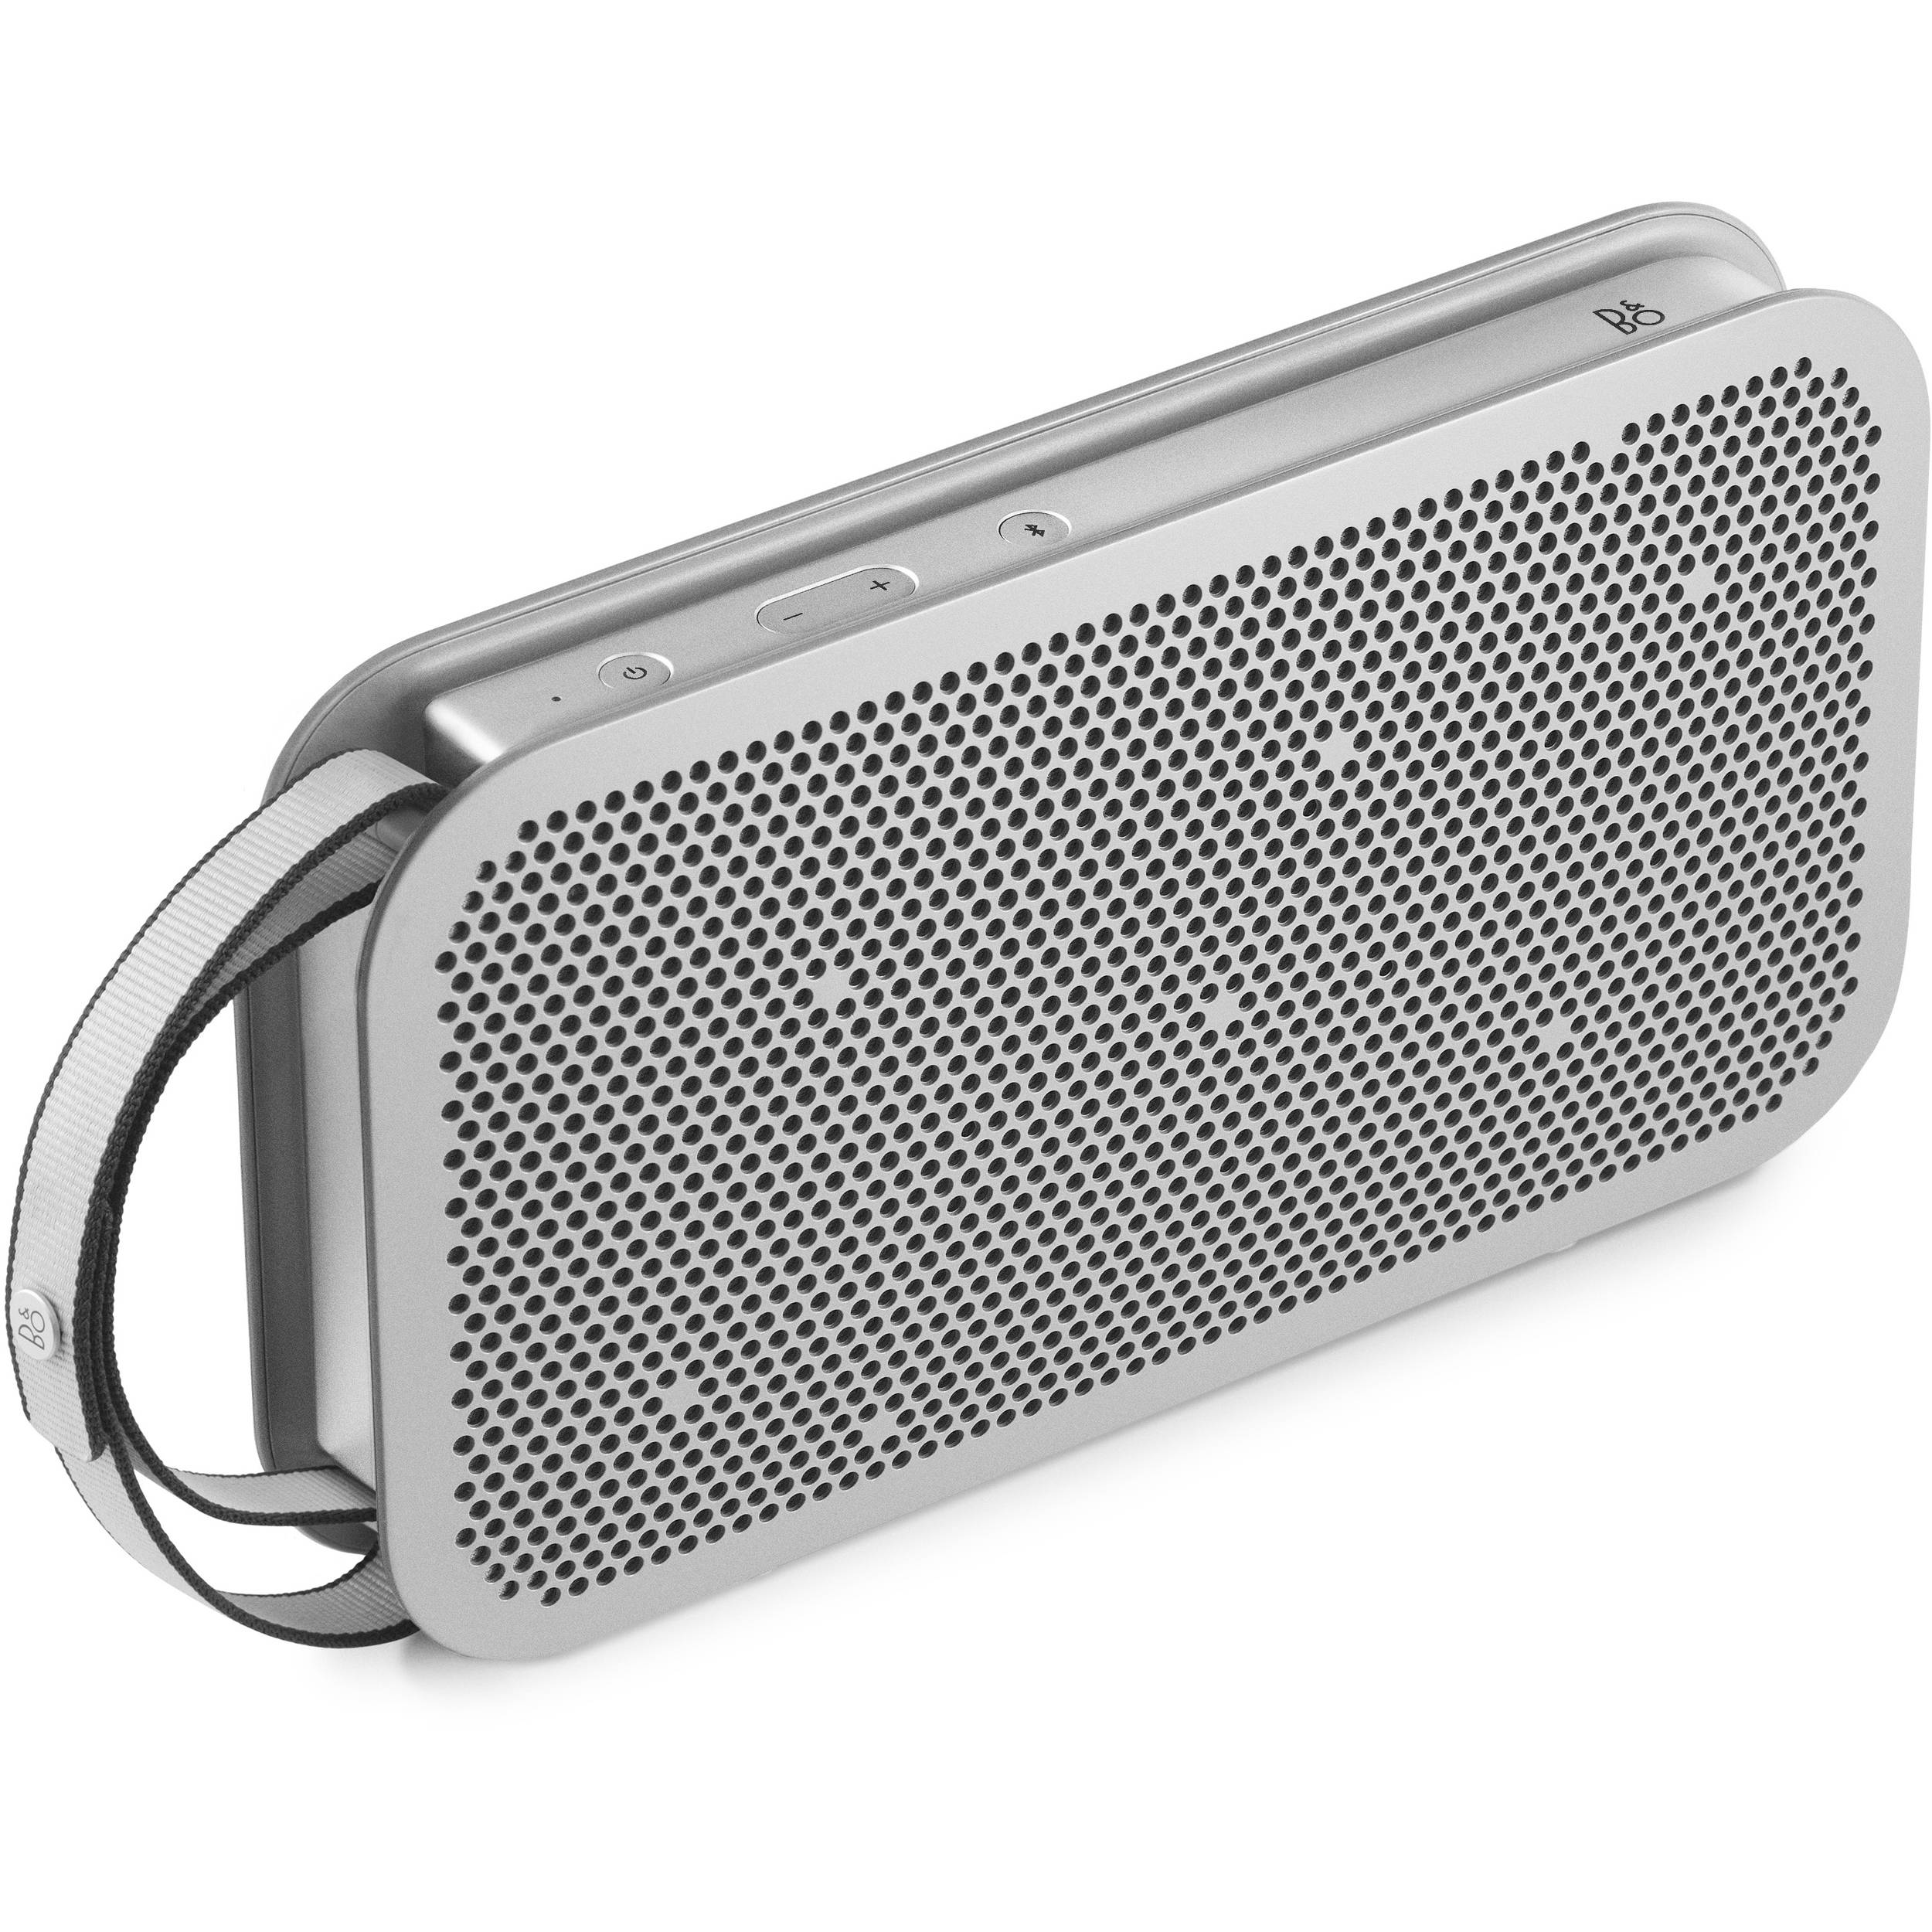 Joystick Bluetooth Seisa B O Beoplay P2 Portable Bluetooth Speaker Best Fm Bluetooth Transmitter For Older Cars Km19 Mag Mount Insignia Portable Bluetooth Speaker Ns Cspbt03: B&O PLAY By Bang & Olufsen Beoplay A2 Active Bluetooth 1643746